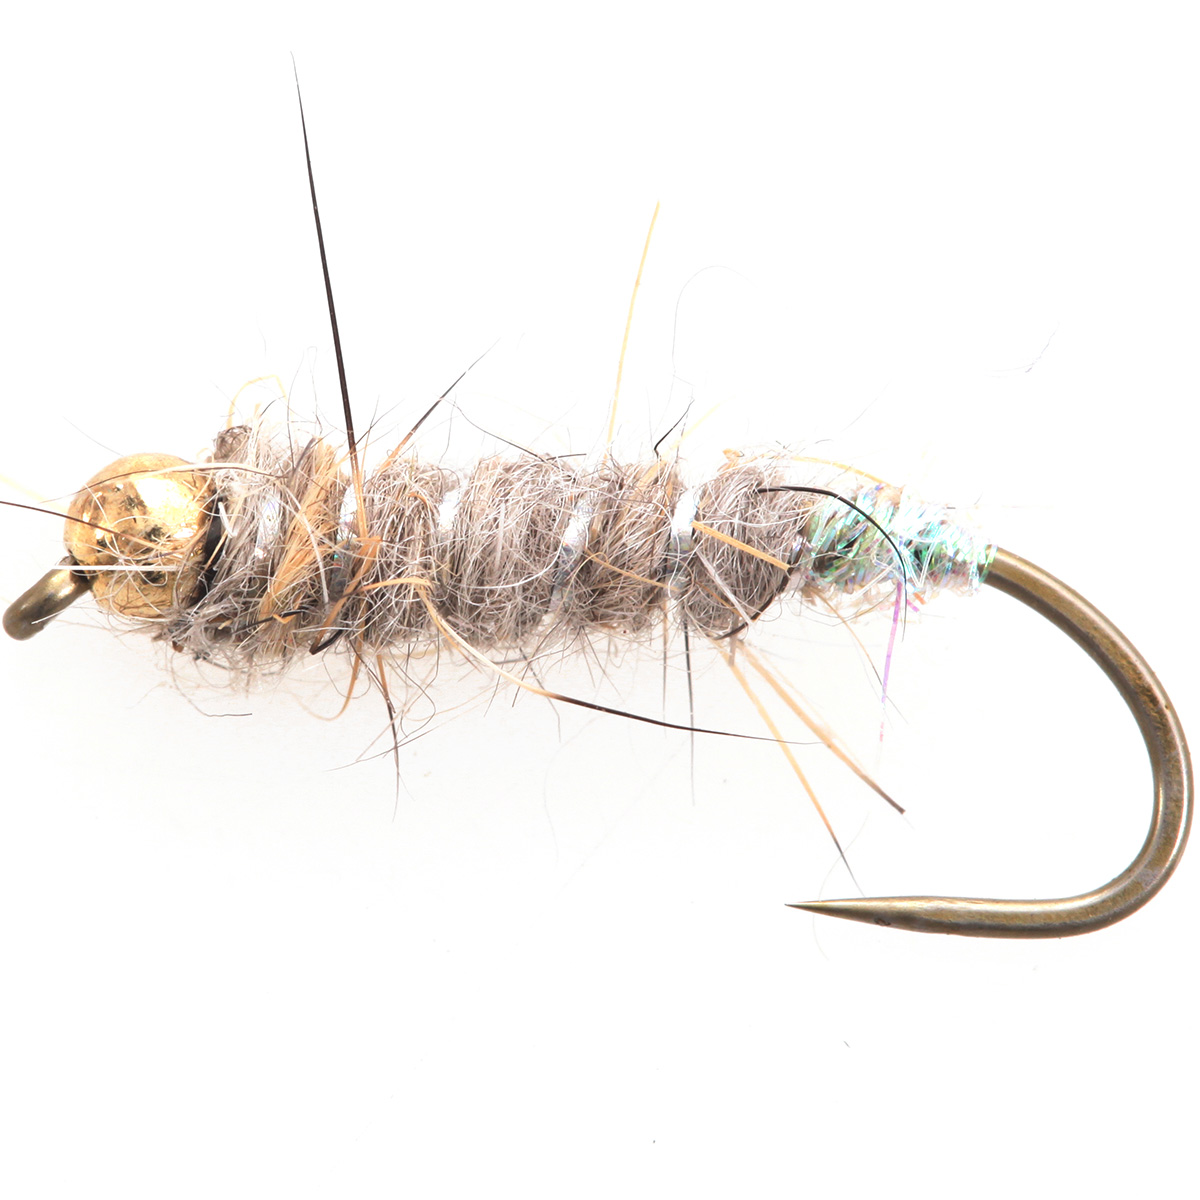 Tungsten BH Caddis Case Nymph